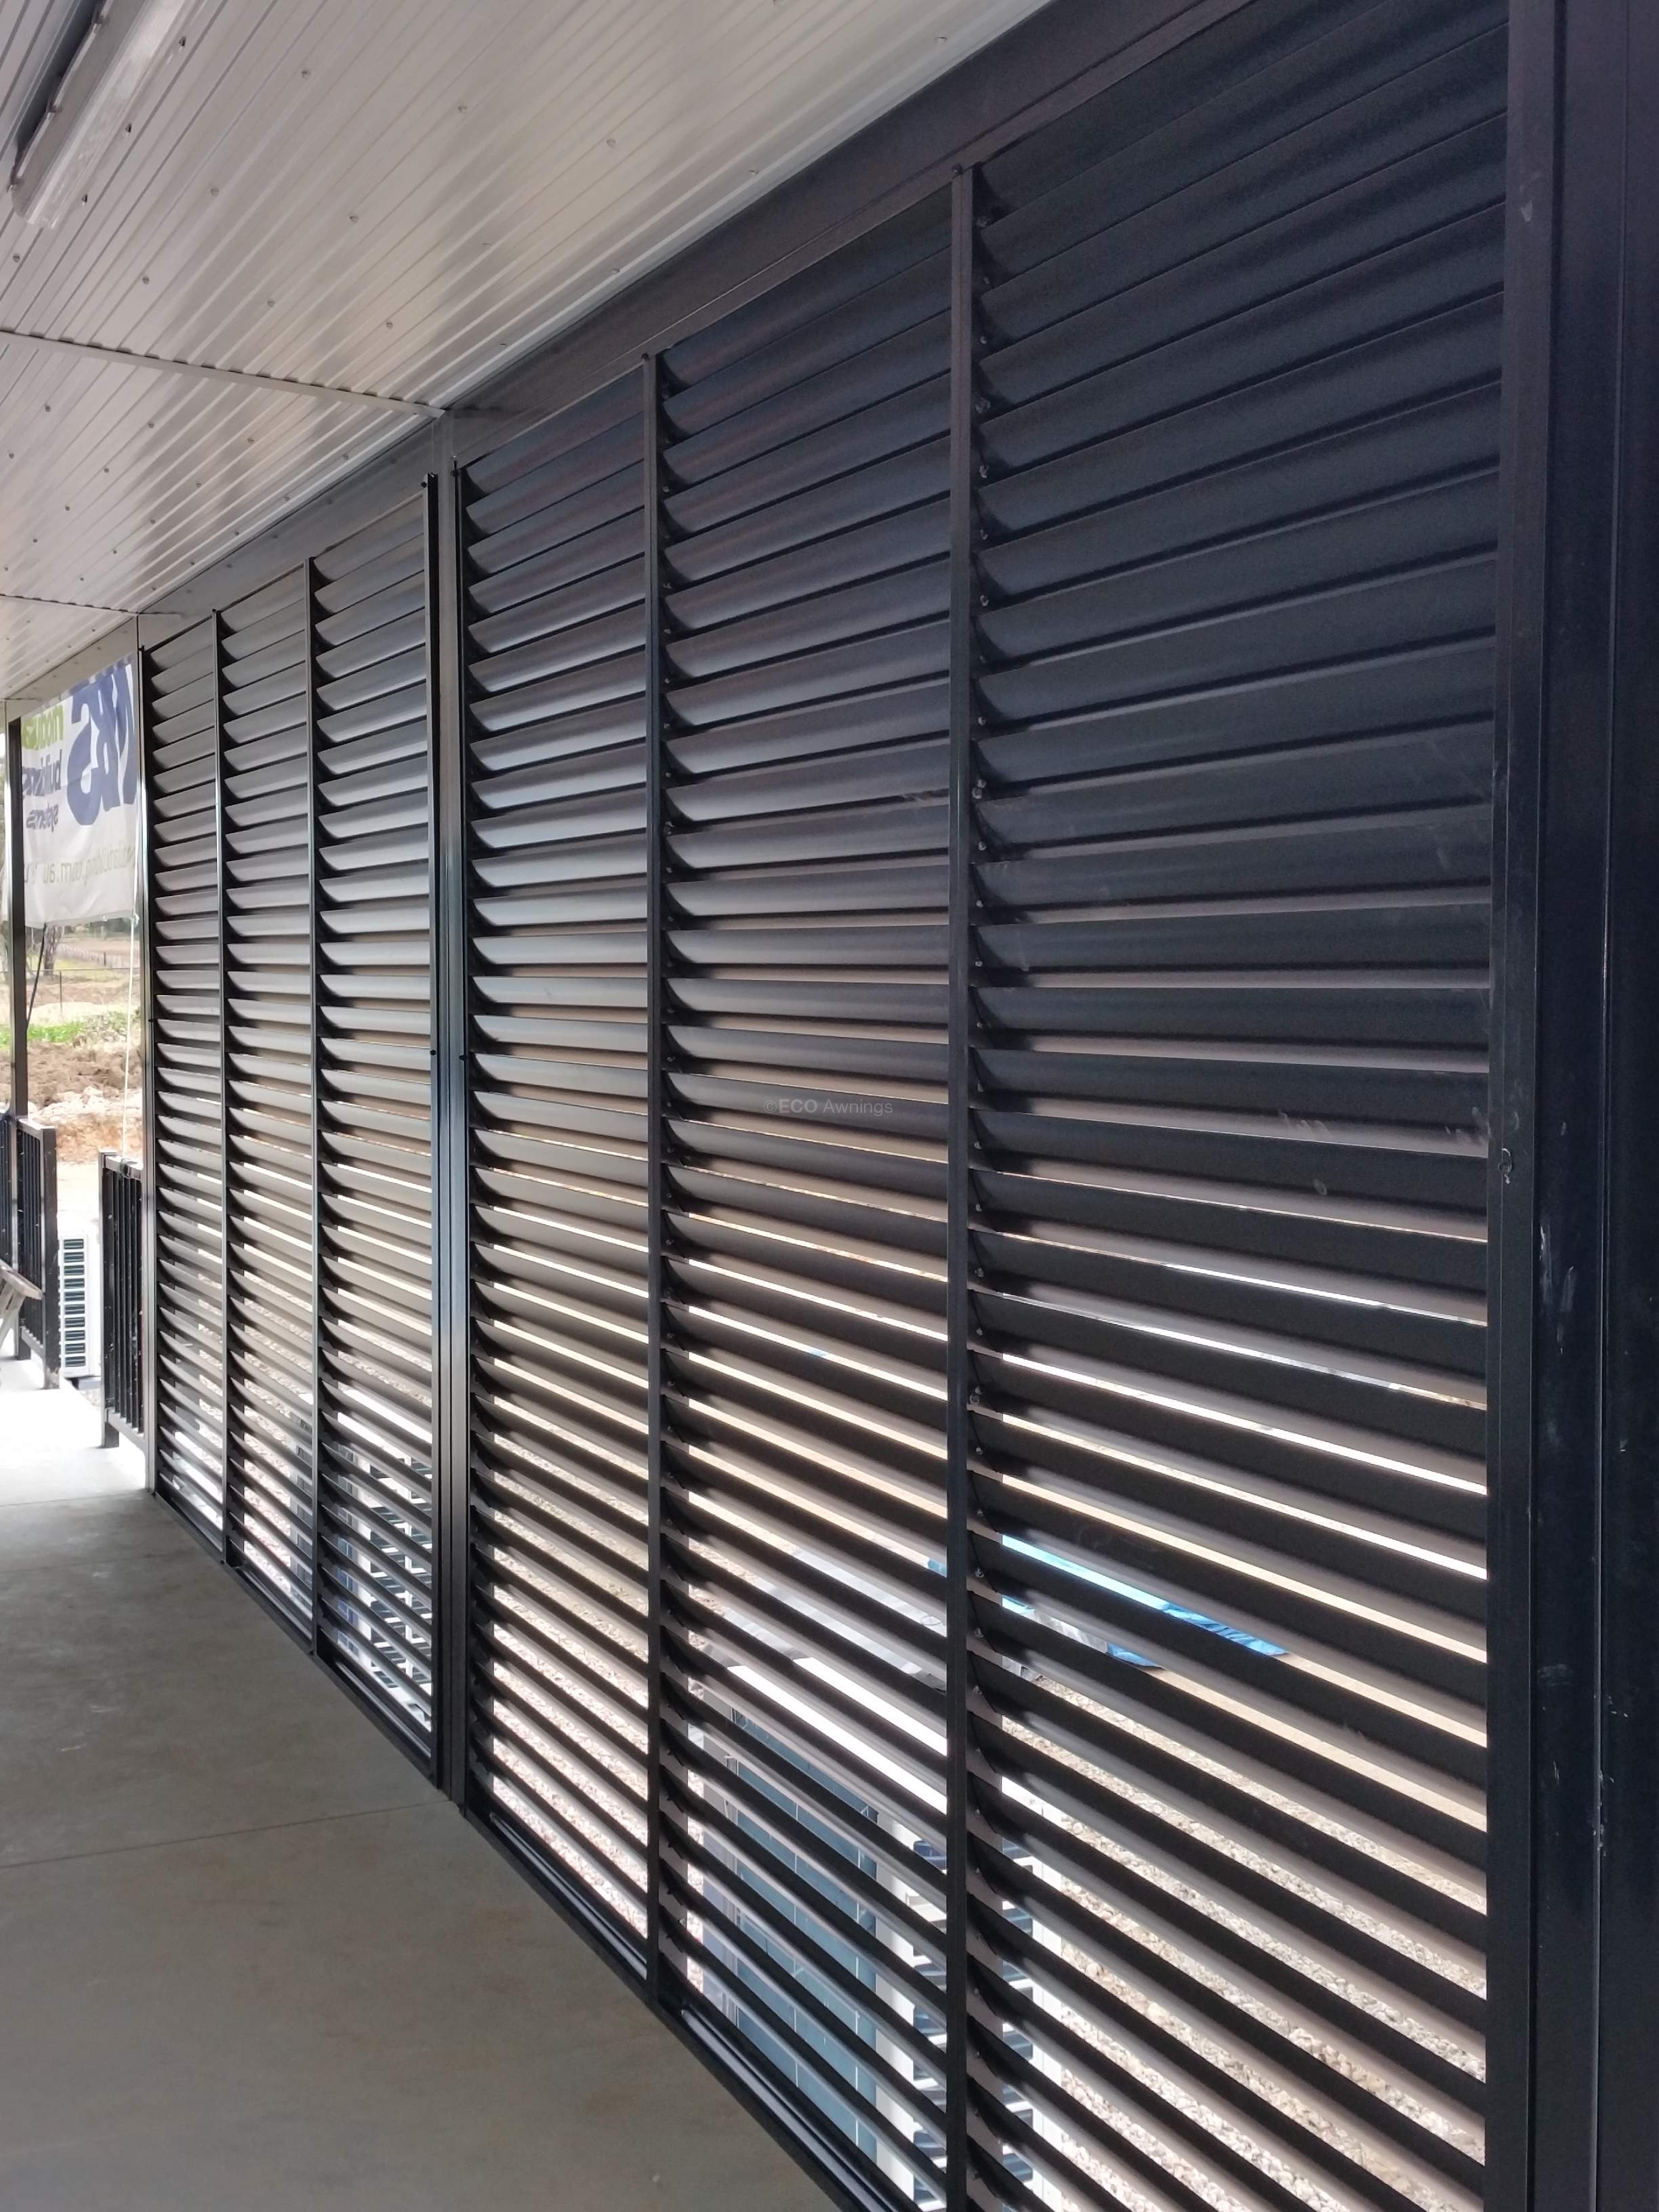 #756756 Privacy Screen Louvers With Fixed Welded Louvers In A  Highly Rated 5019 Louvered Screen Wall wallpapers with 2448x3264 px on helpvideos.info - Air Conditioners, Air Coolers and more